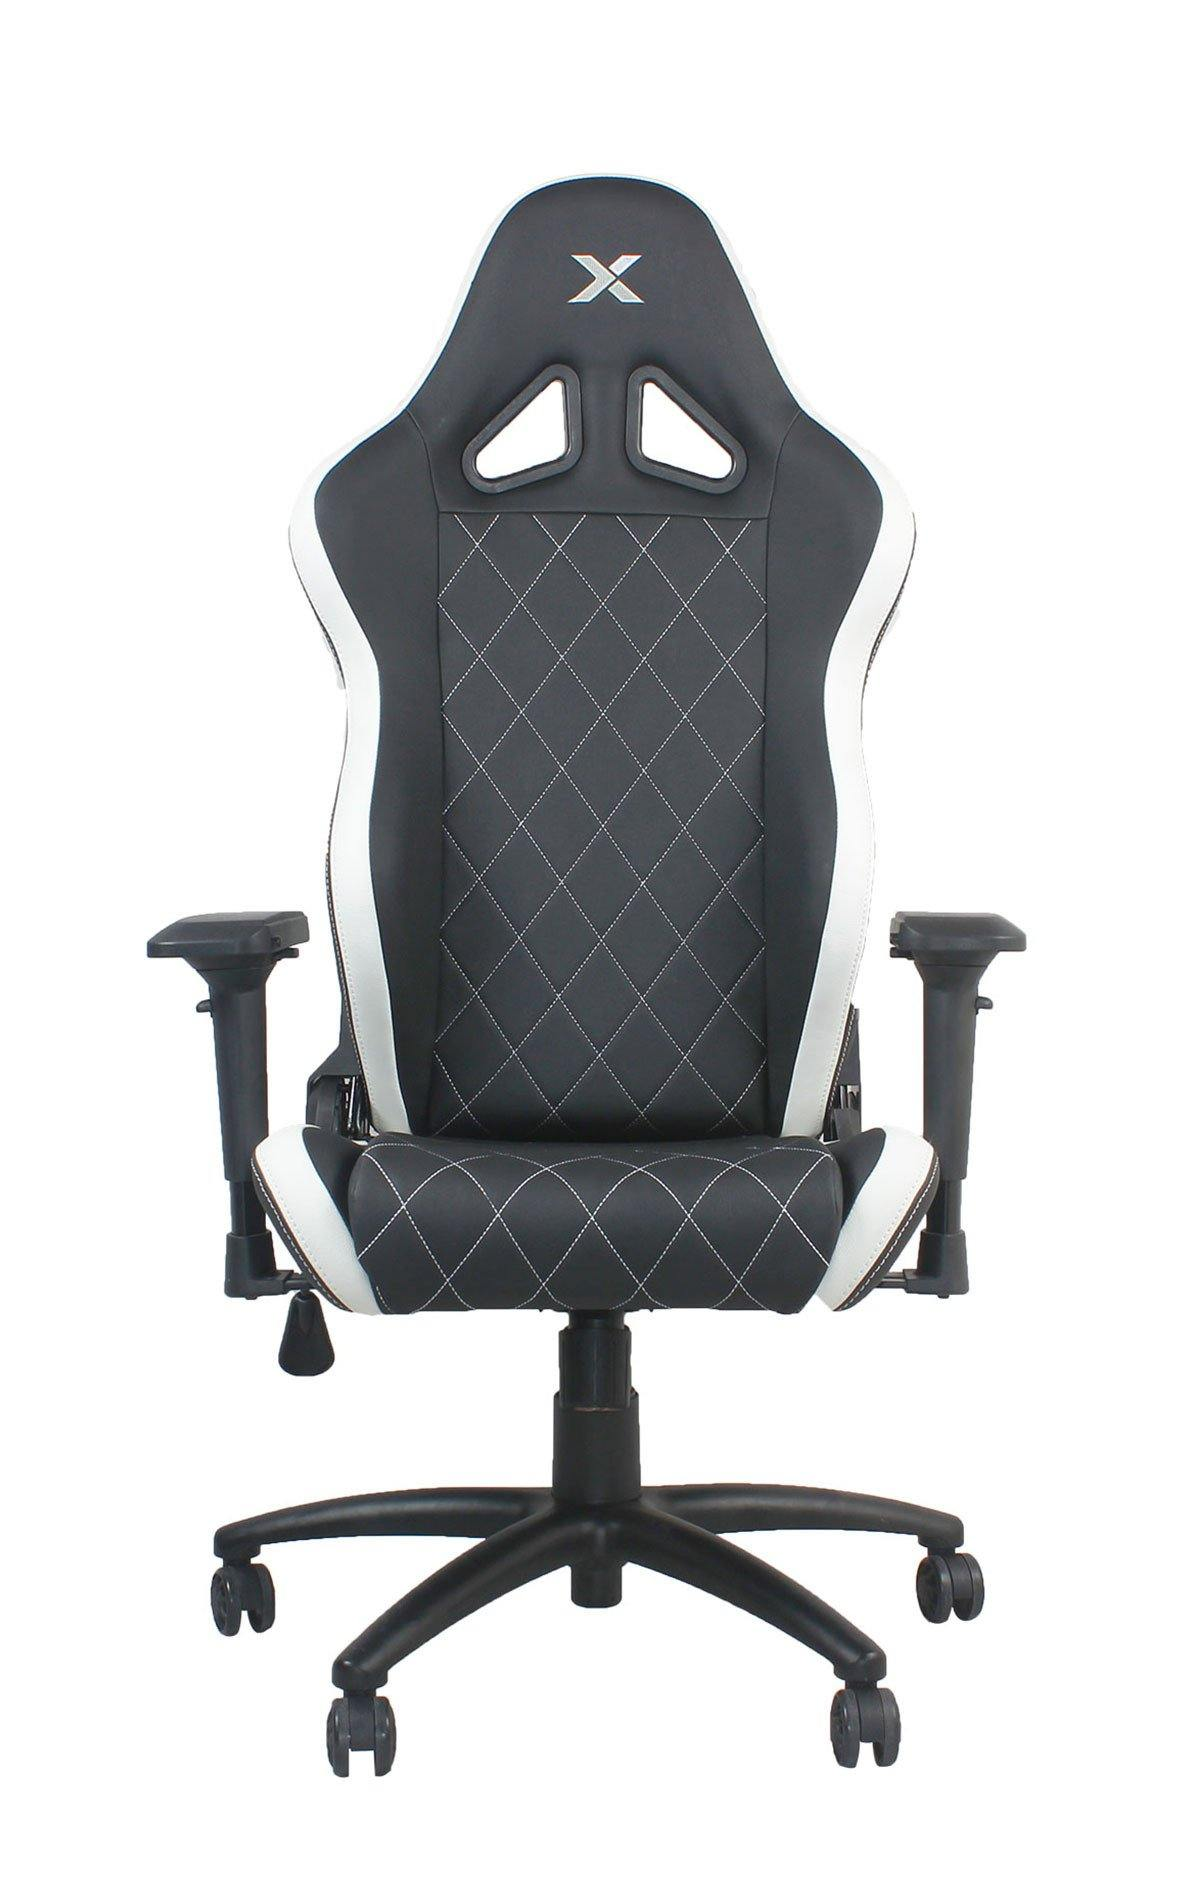 Ferrino Chair - White on Black